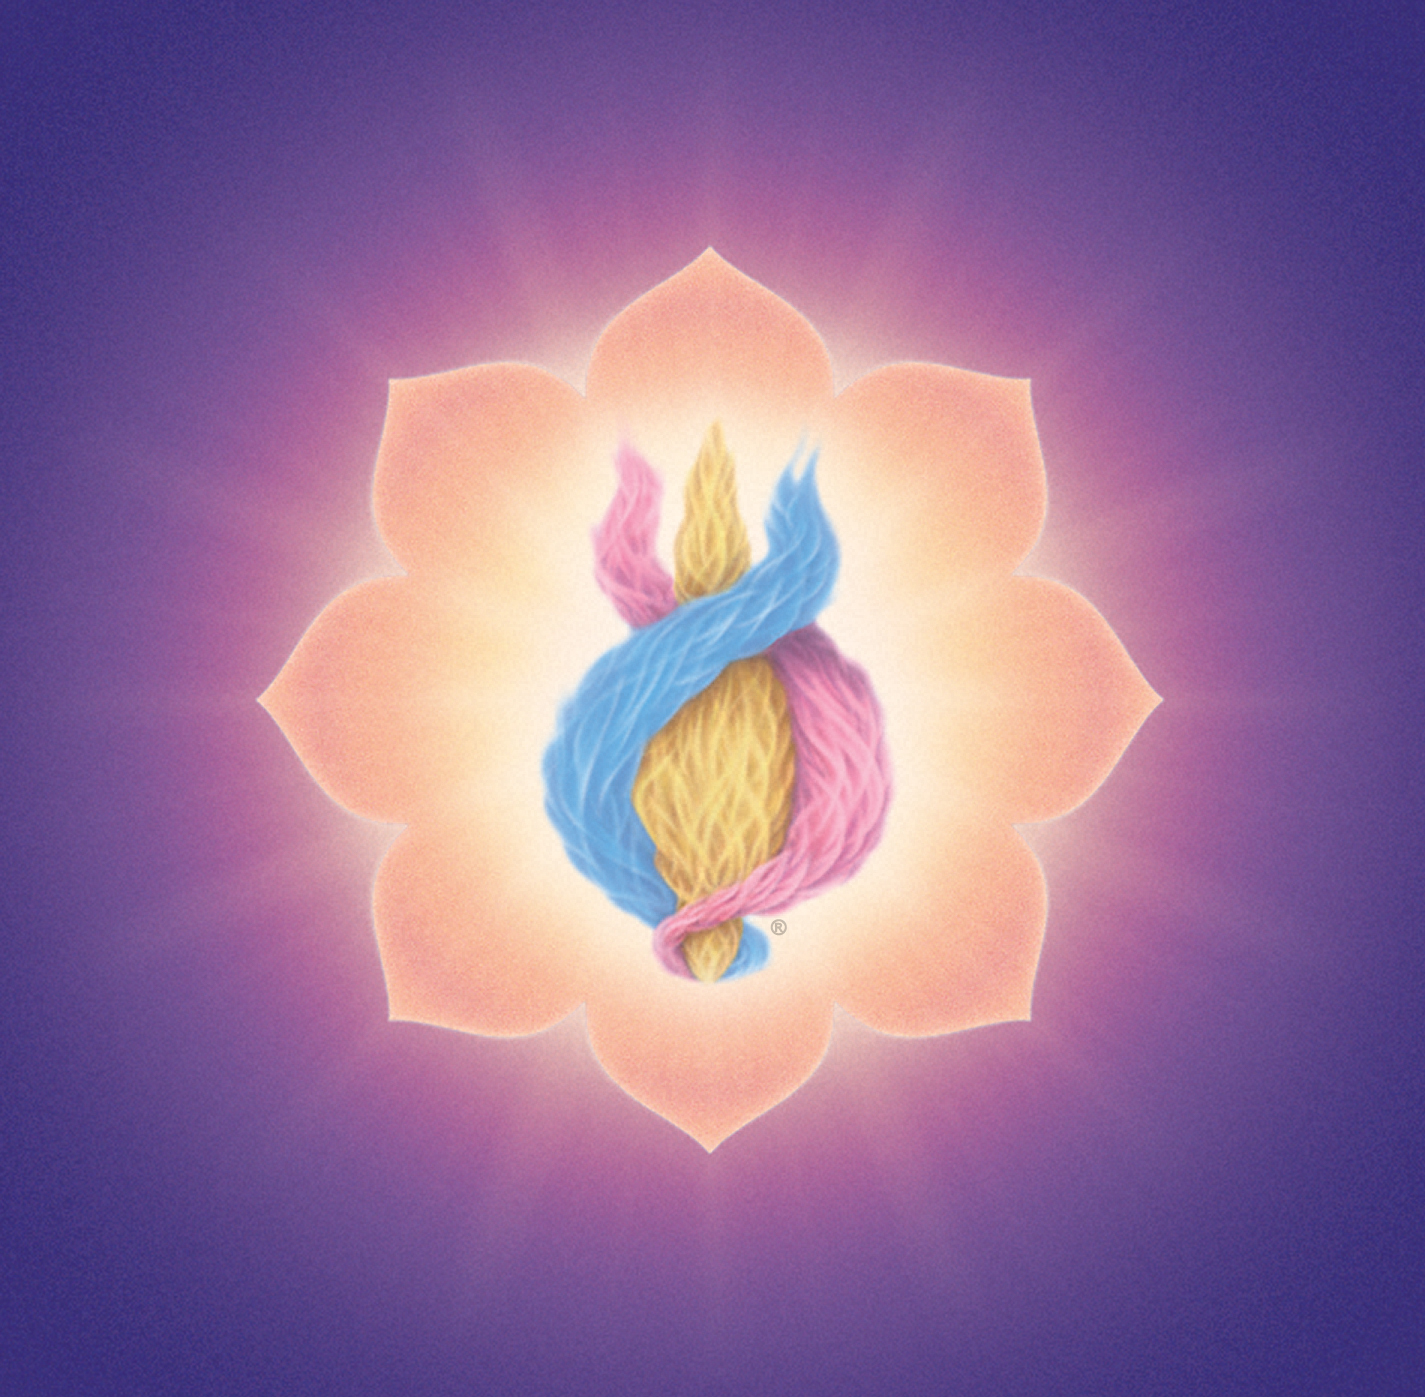 Become the Magnet of the Heart! A Mystical Retreat to Embrace Your Christhood with Saint Germain, Lord Maitreya and Jesus Christ